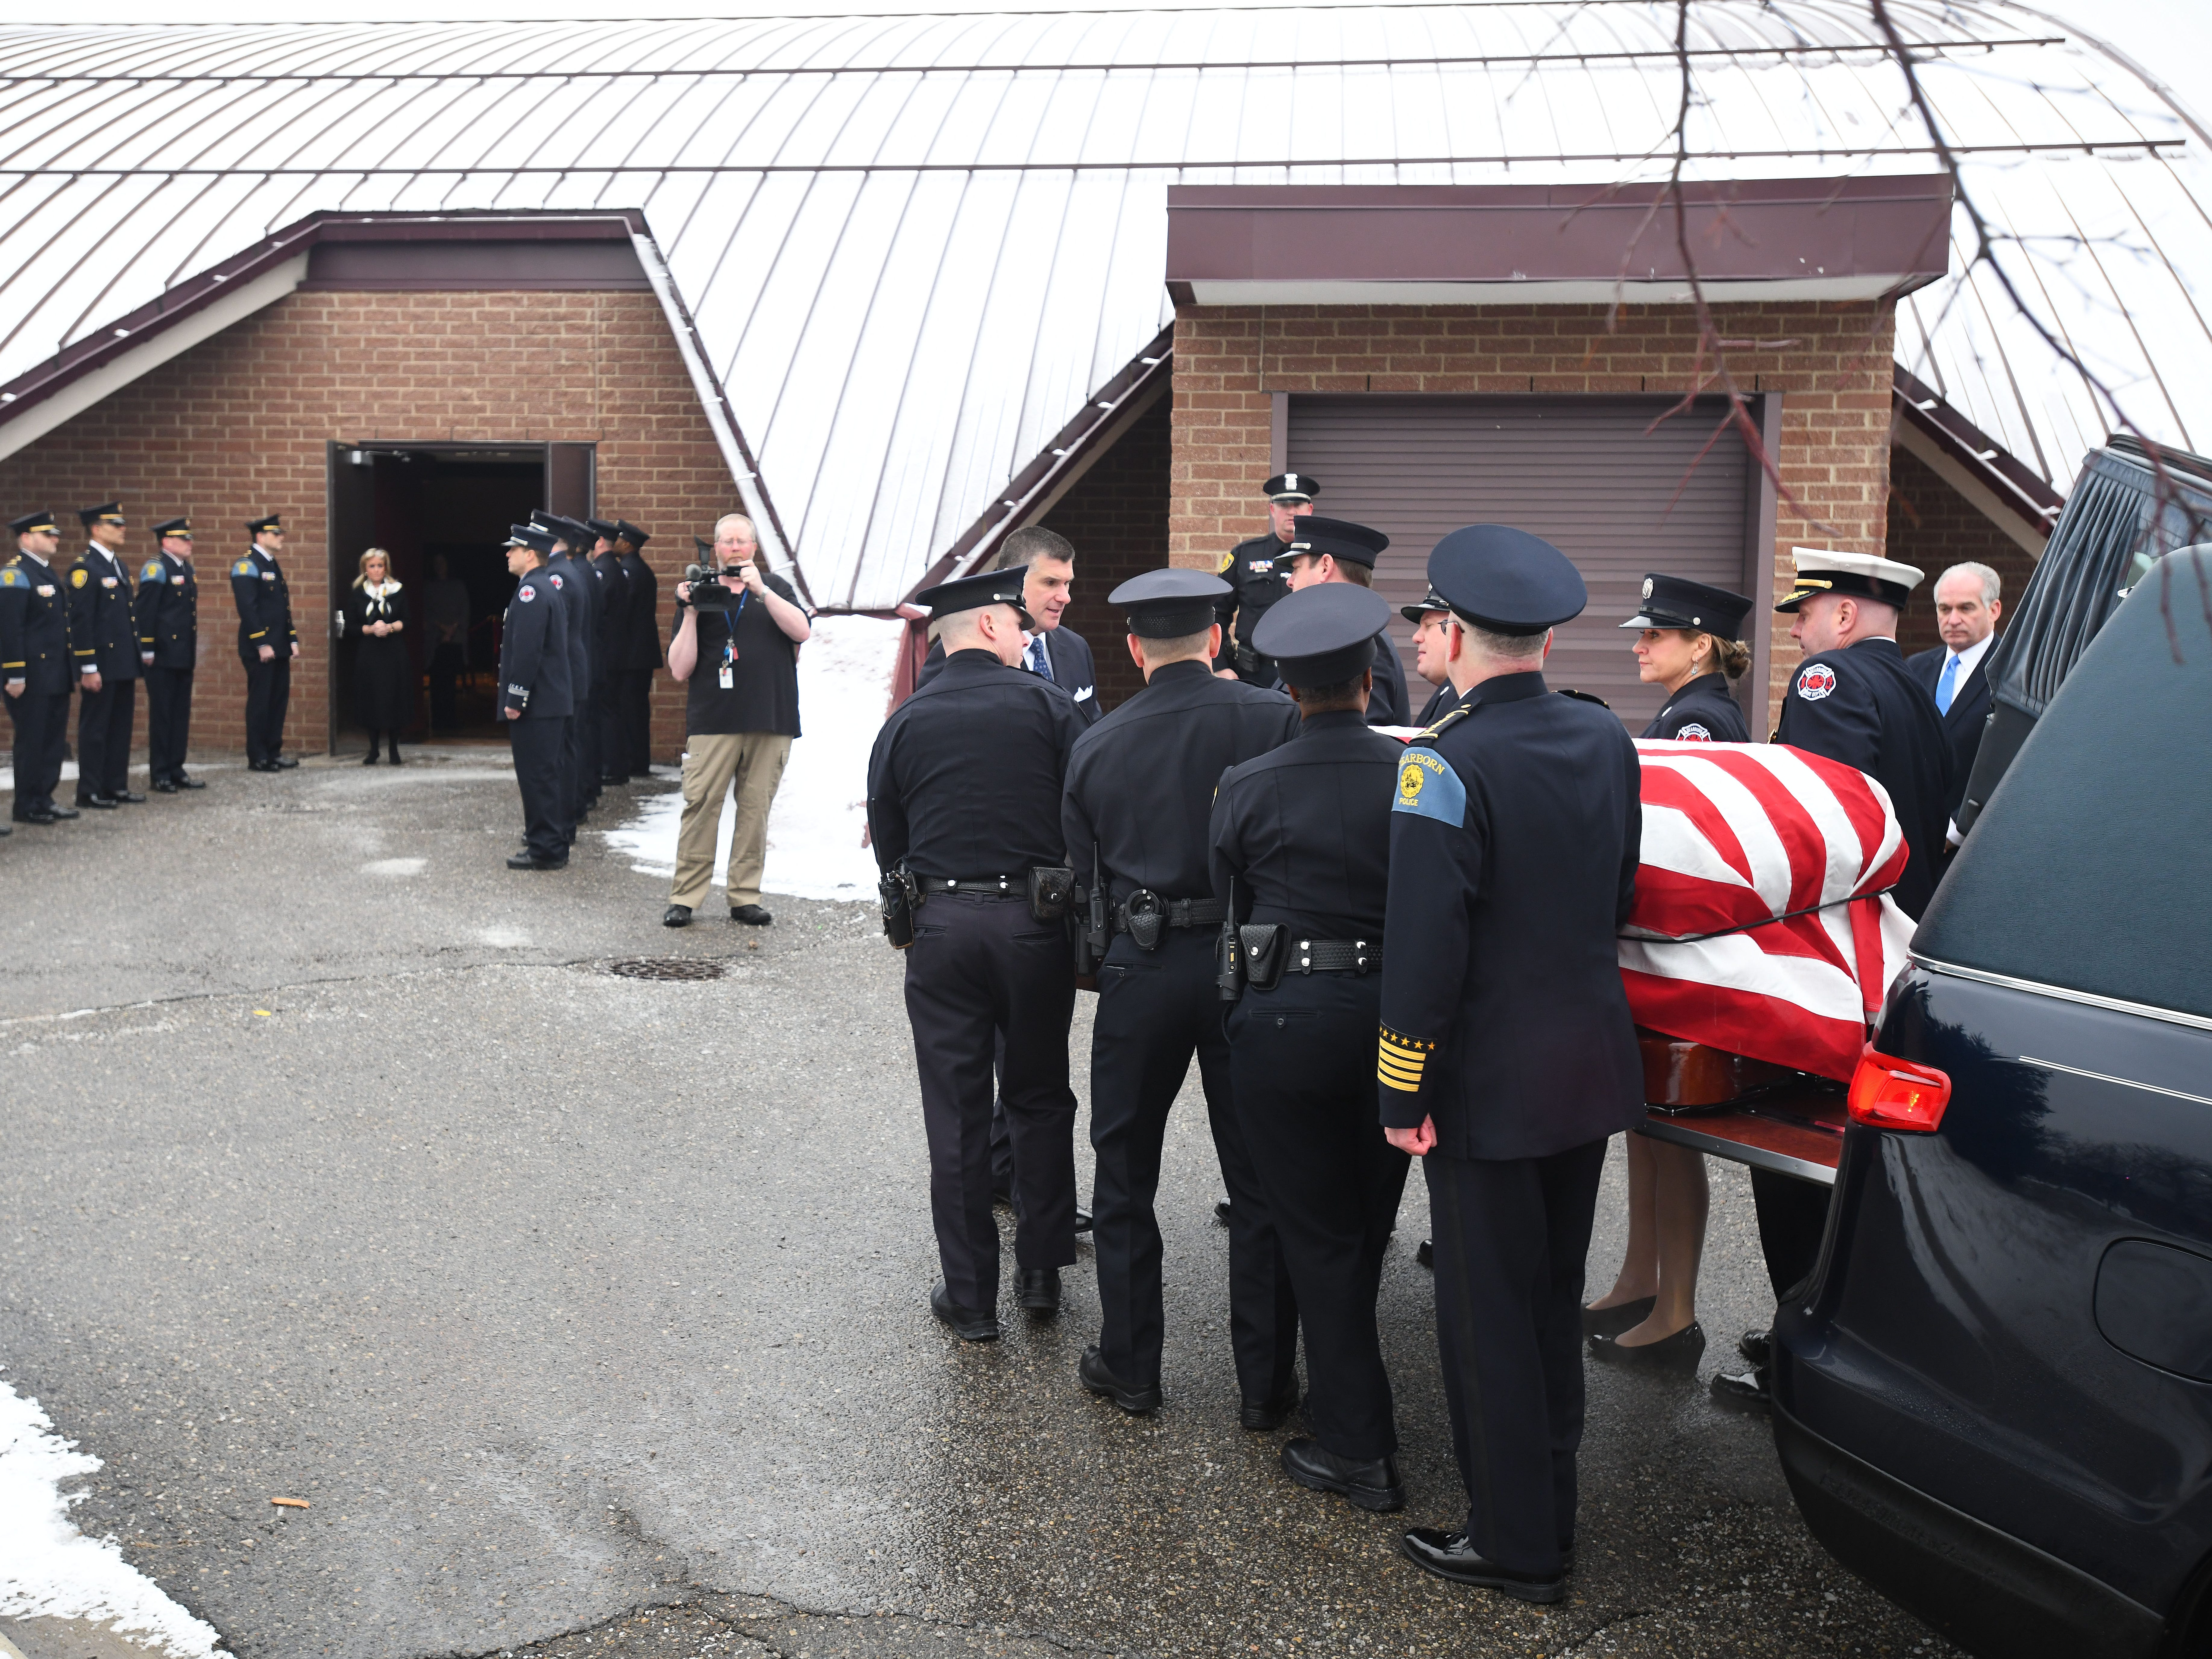 Dearborn public safety officers take John Dingell's casket into the Ford Community and Performing Arts Center in Dearborn.